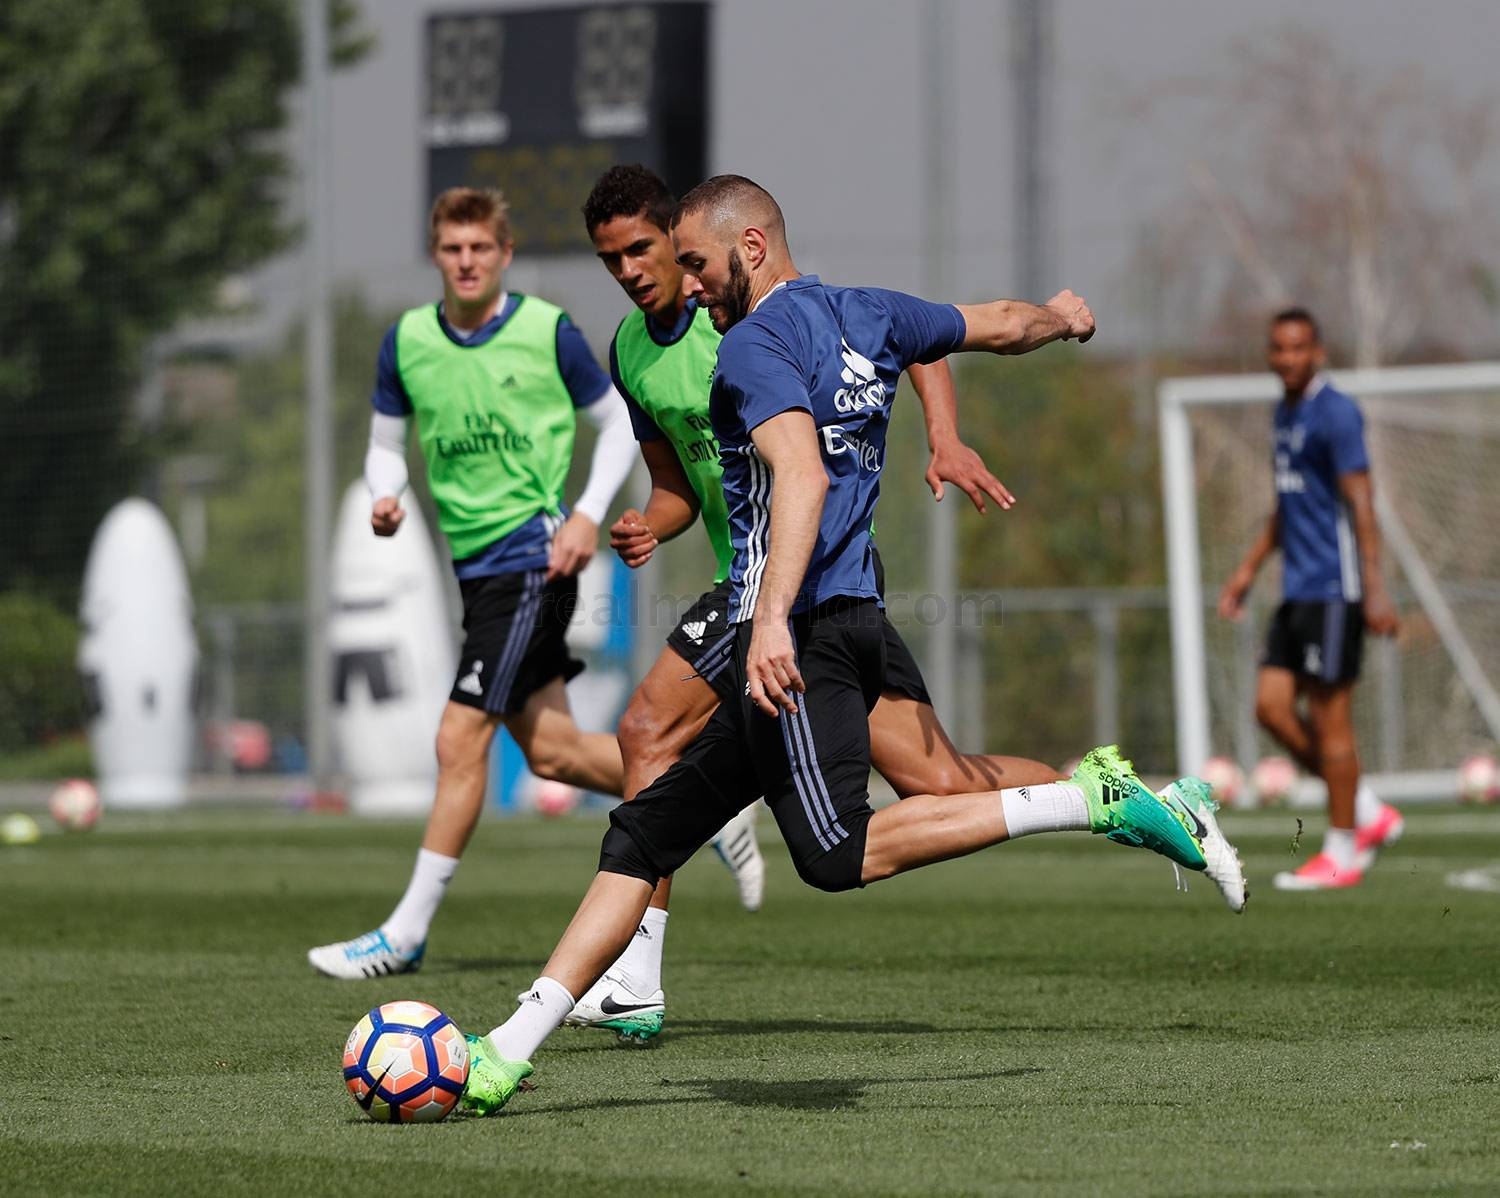 Real Madrid - Entrenamiento del Real Madrid - 25-04-2017